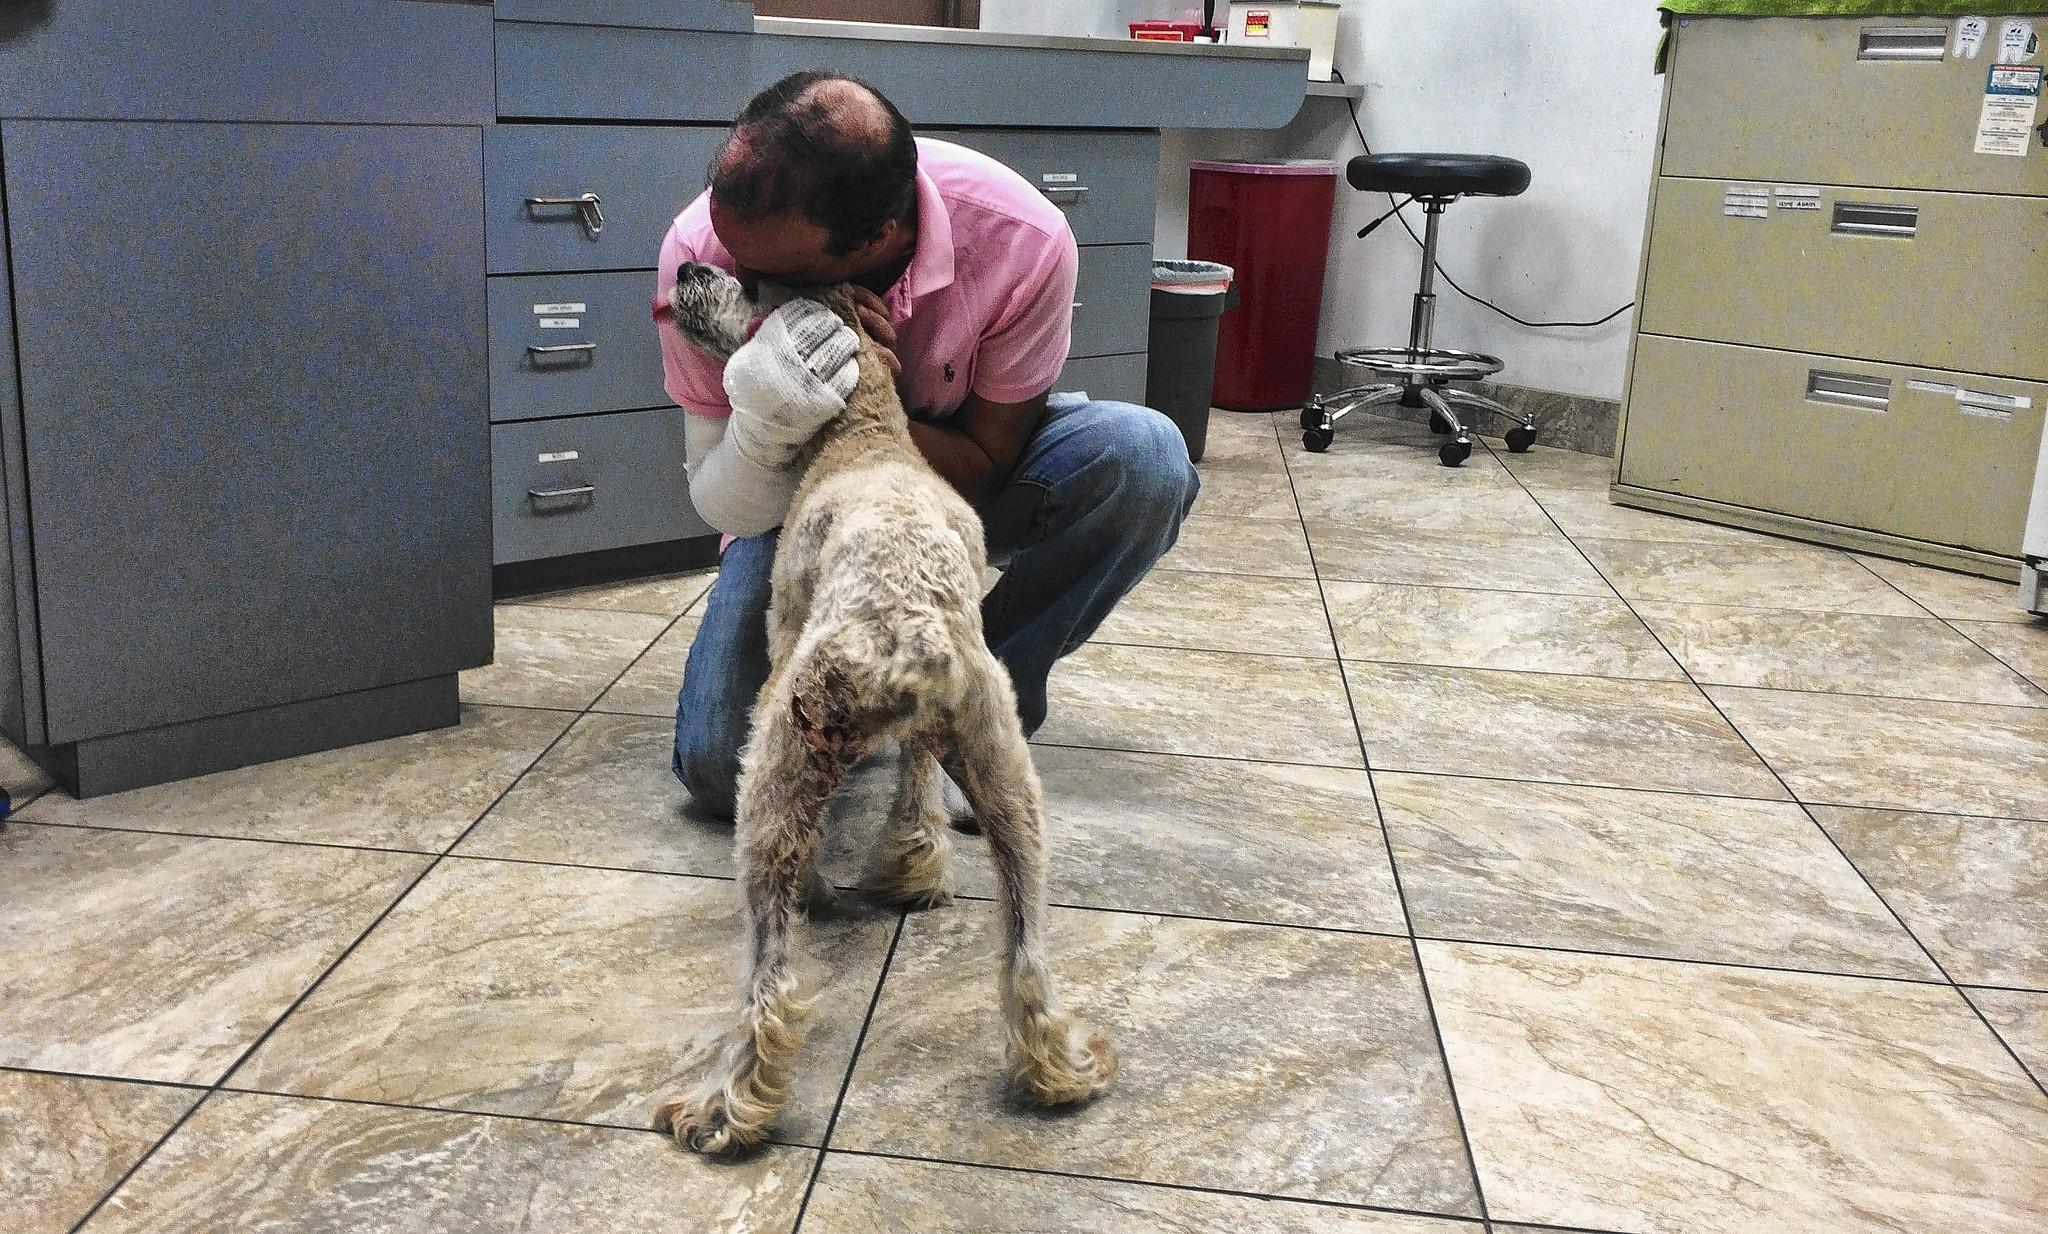 Jess Olivas of Parkland gives a welcome hug to his pet Ruby at Dr. Peter's Animal Hospital in Margate before taking her home.